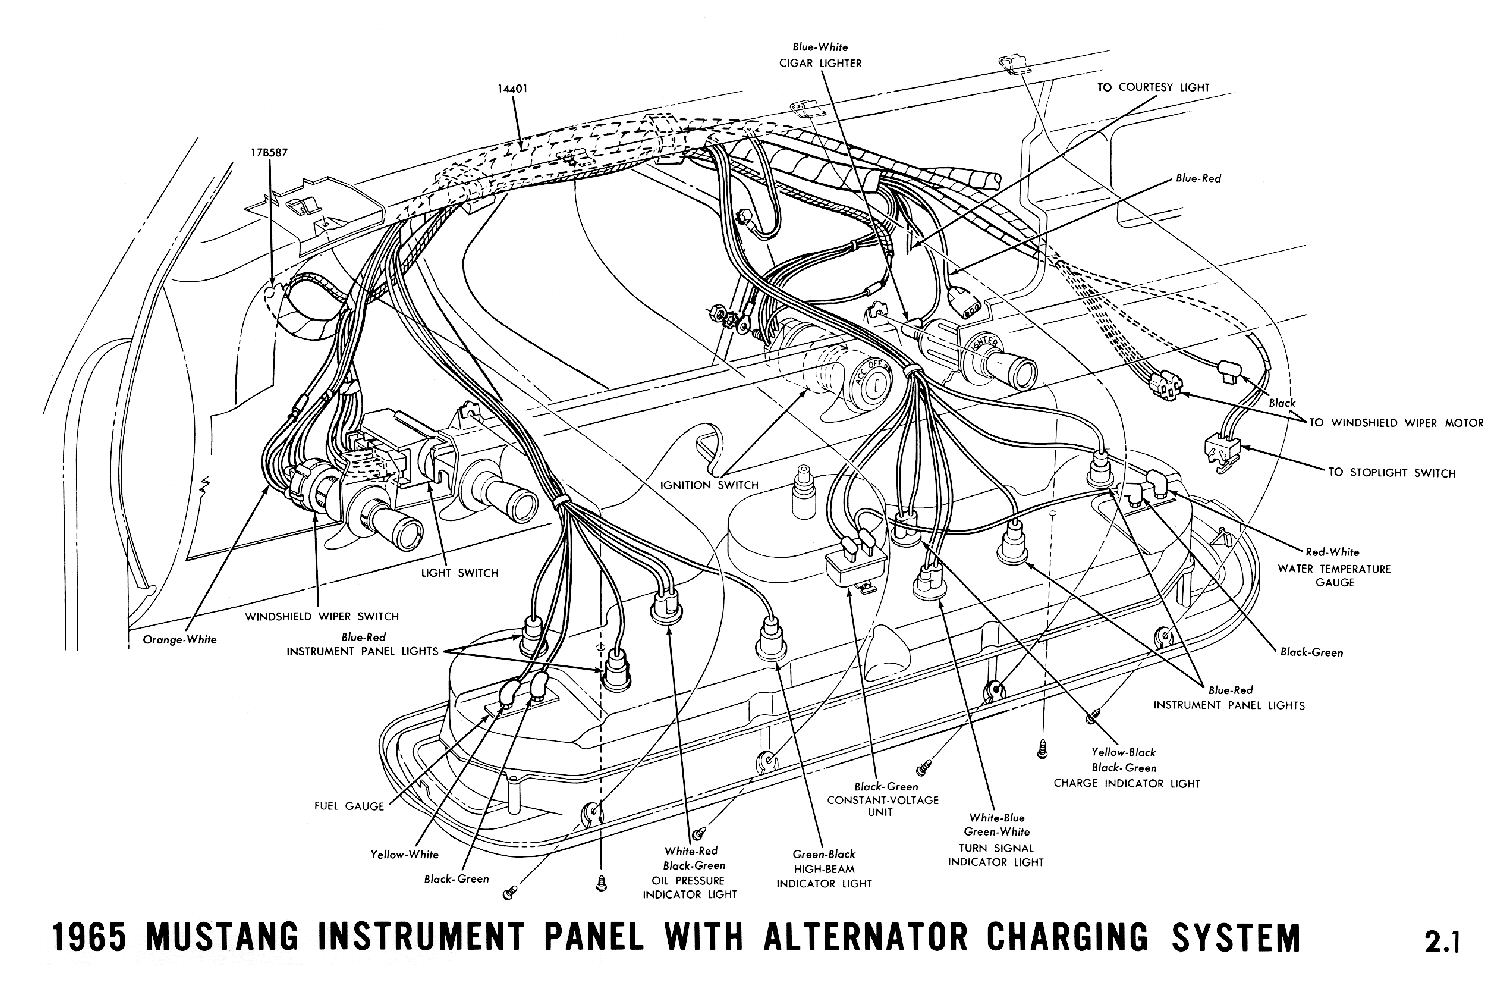 1965a 1965 mustang wiring diagrams average joe restoration  at readyjetset.co